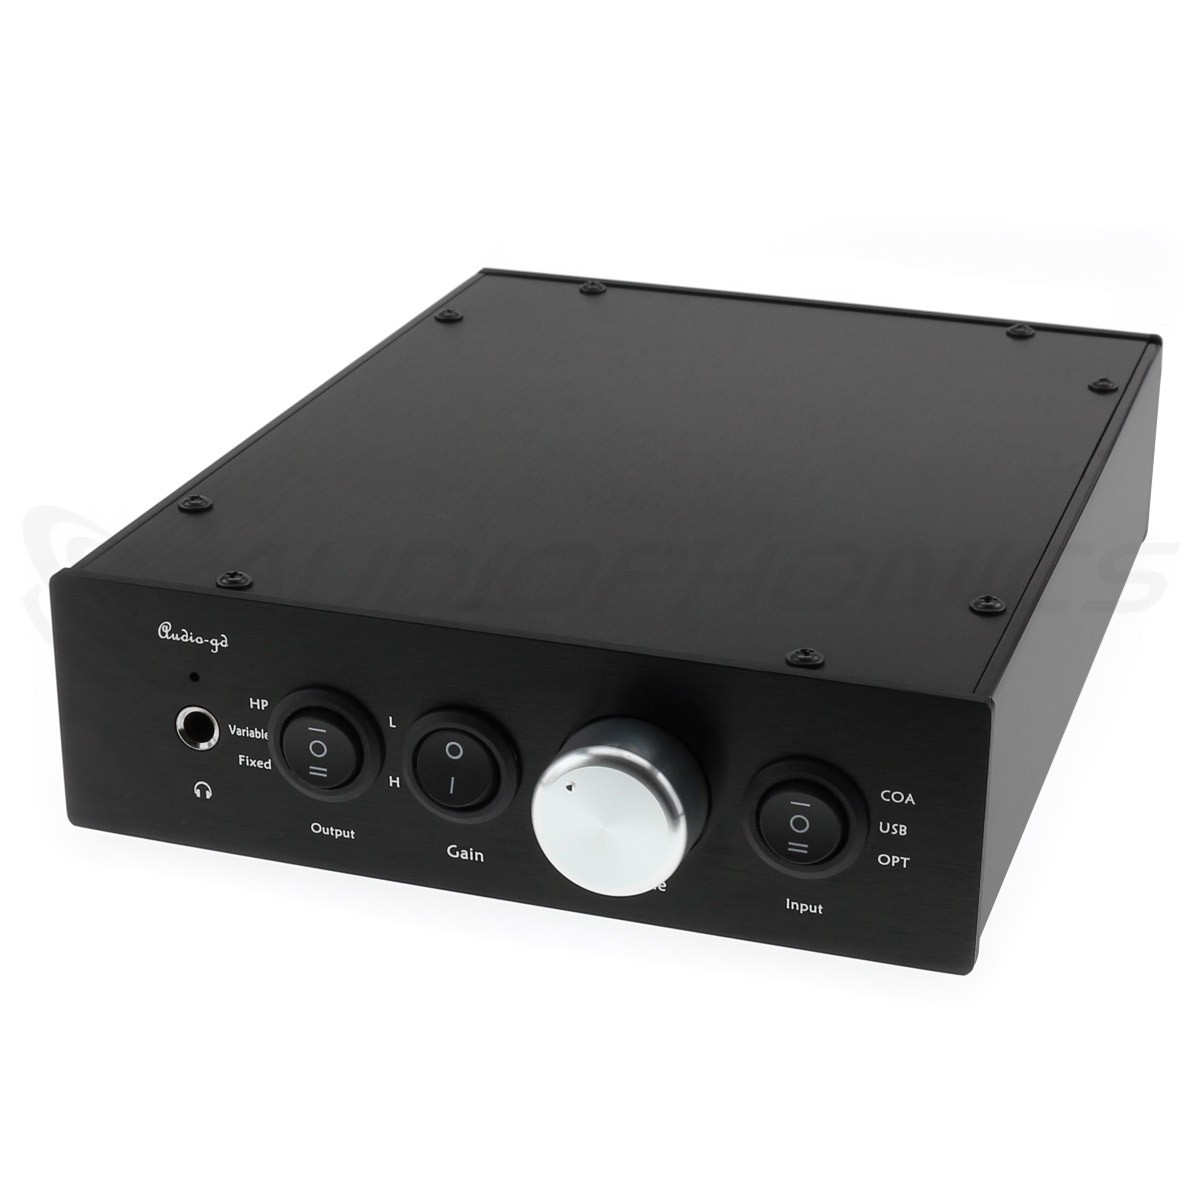 AUDIO-GD NFB-11.28 PERFORMANCE EDITION DAC ES9028Pro Preamplifier Headphone Amplifier 32bit 384kHz DSD512 Accusilicon